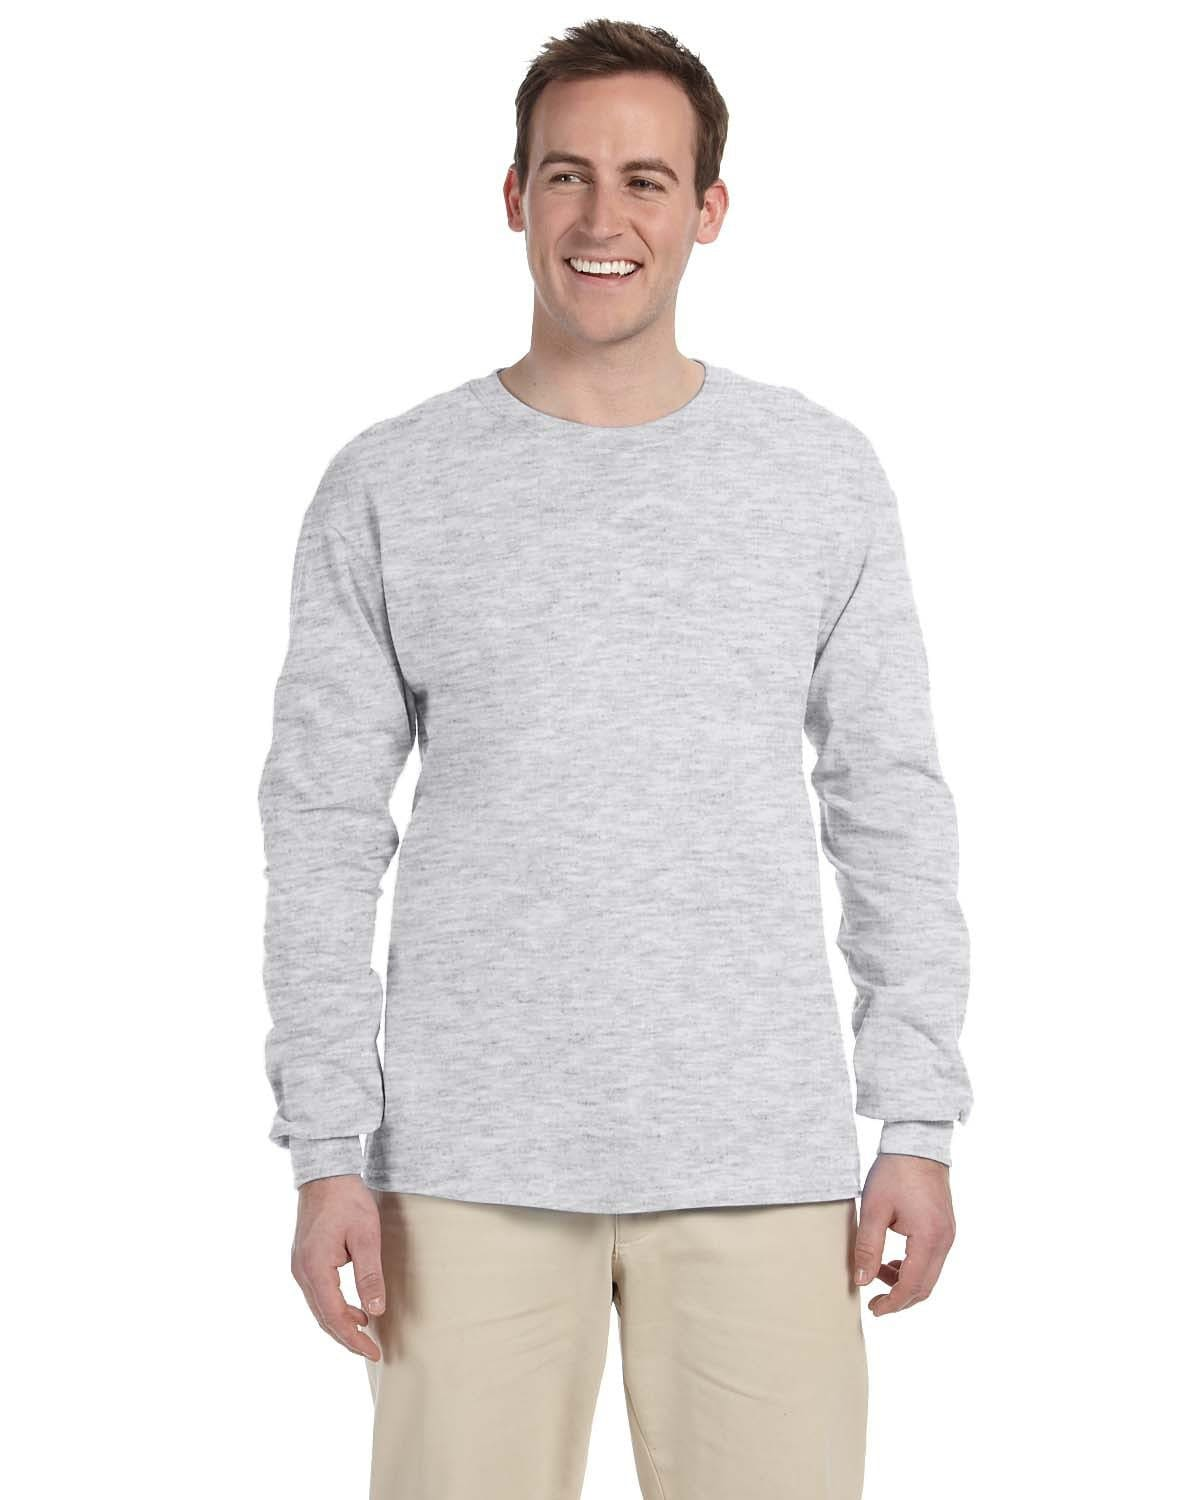 g240-adult-ultra-cotton-6-oz-long-sleeve-t-shirt-4xl-5xl-4XL-ASH GREY-Oasispromos